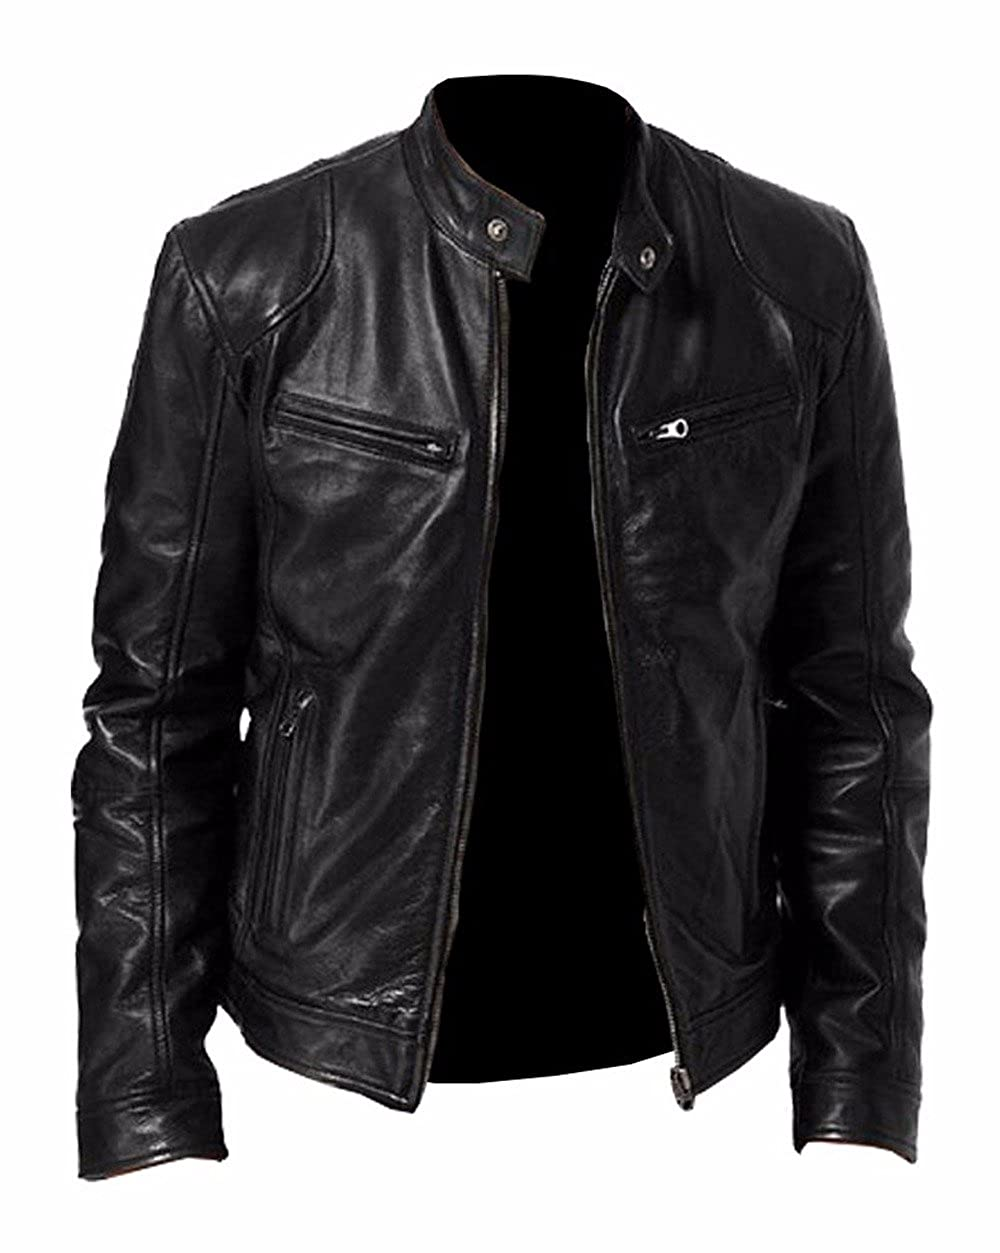 The Sparks Up Inc. Casual Wear Stylish Sword Genuine Leather Biker Jacket